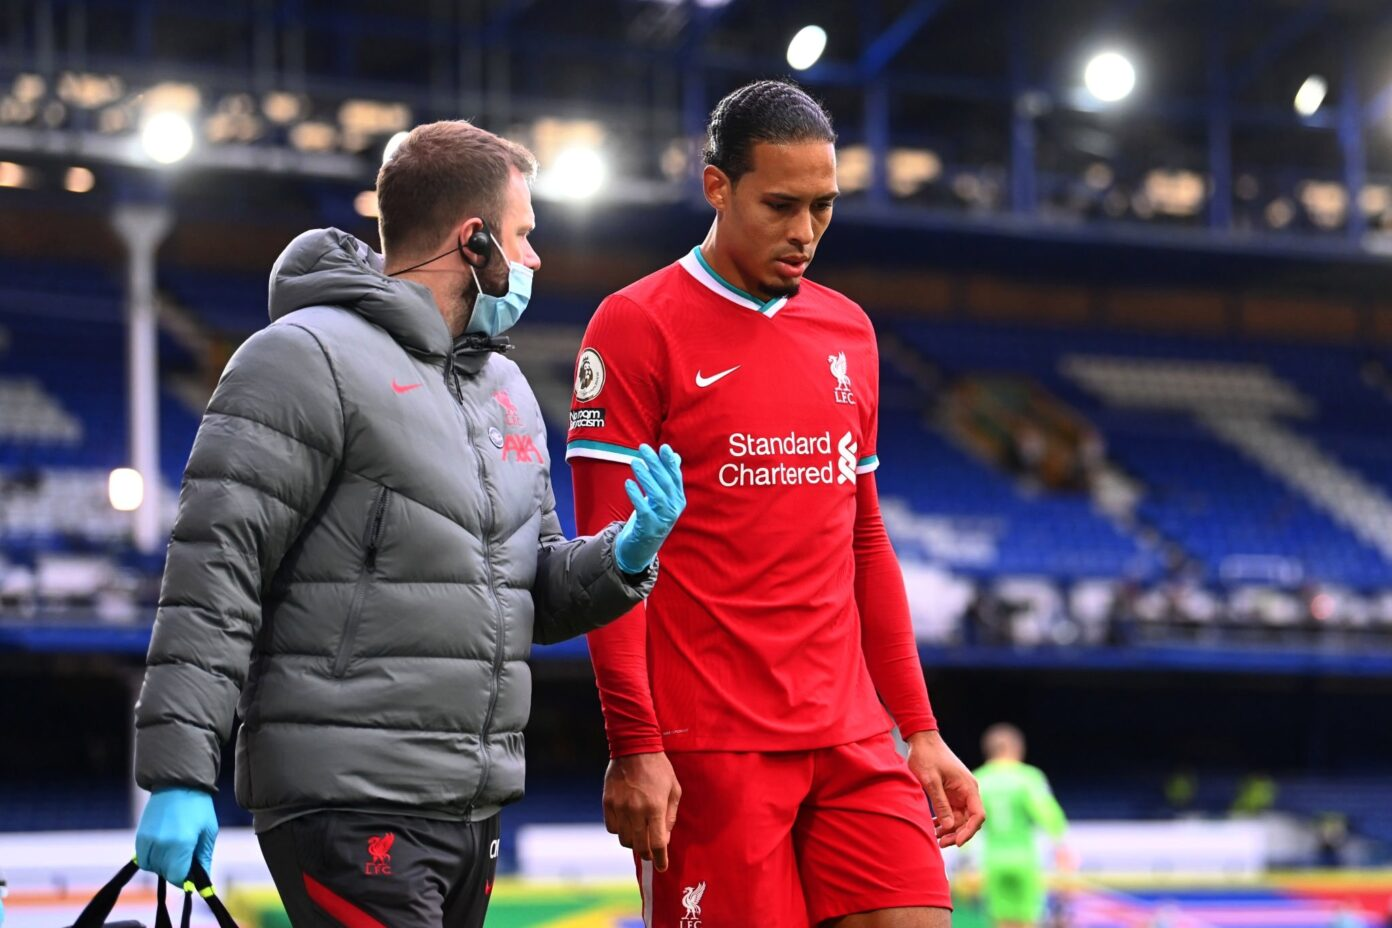 Liverpool Send Key Pair For Scans To Assess Injuries After Everton Draw